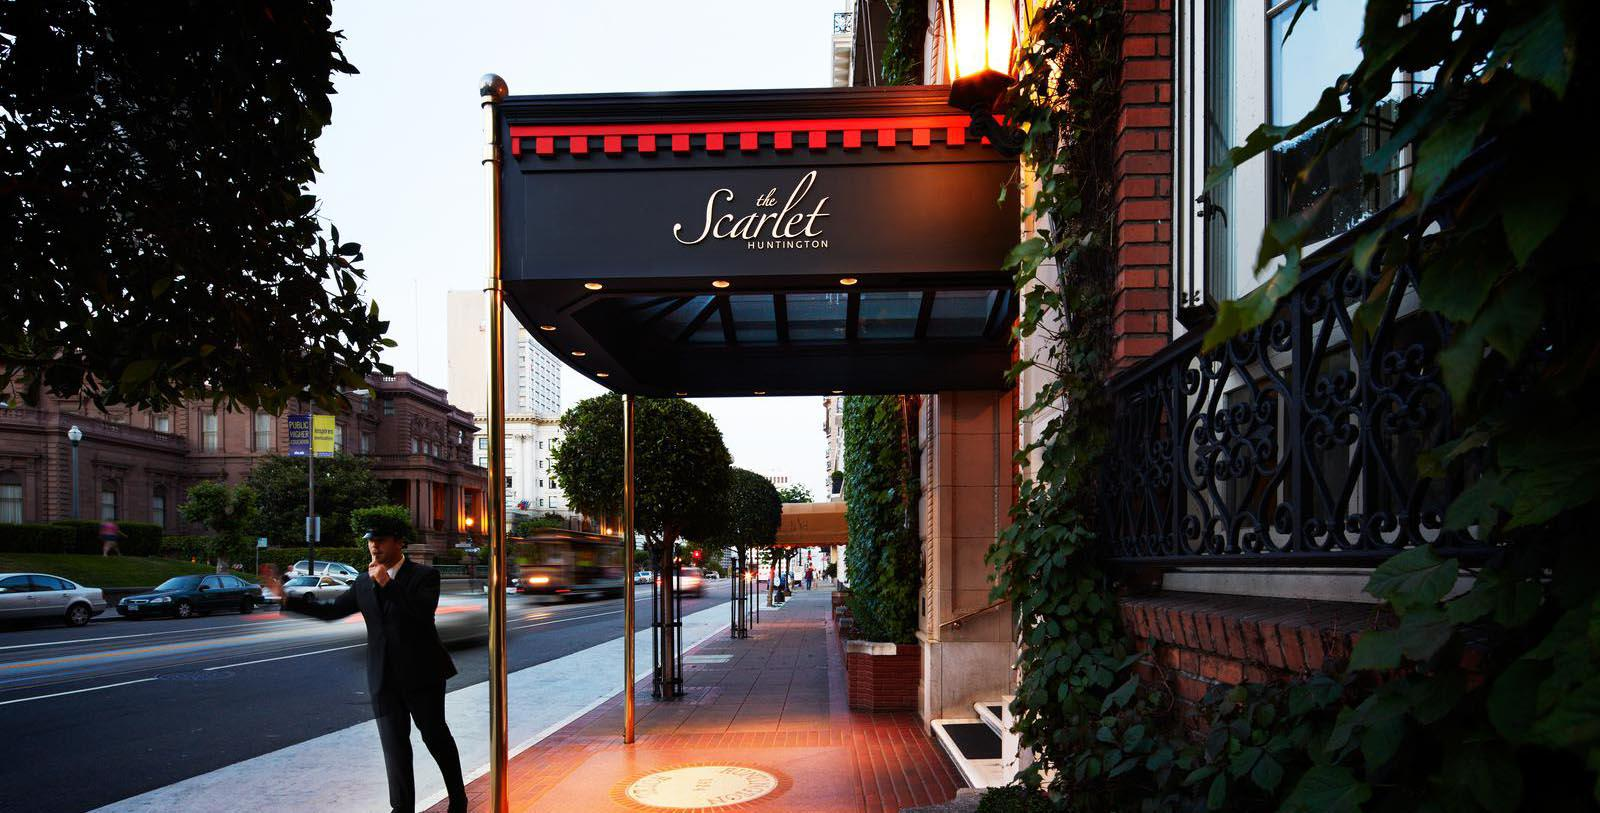 Image of Entrance to The Scarlet at The Huntington Hotel, 1924, Member of Historic Hotels of America, in San Francisco, Discover